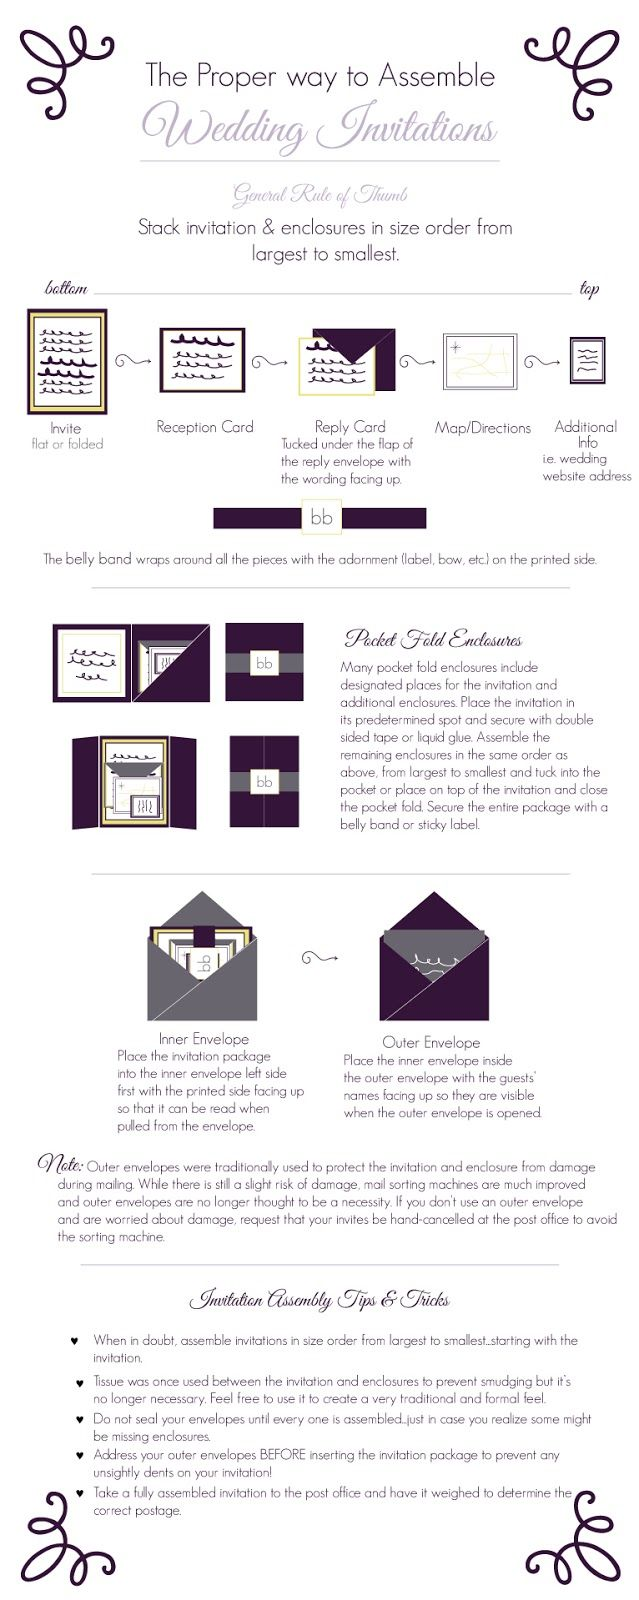 The Proper Way To Assemble Wedding Invitations FREE PRINTABLE